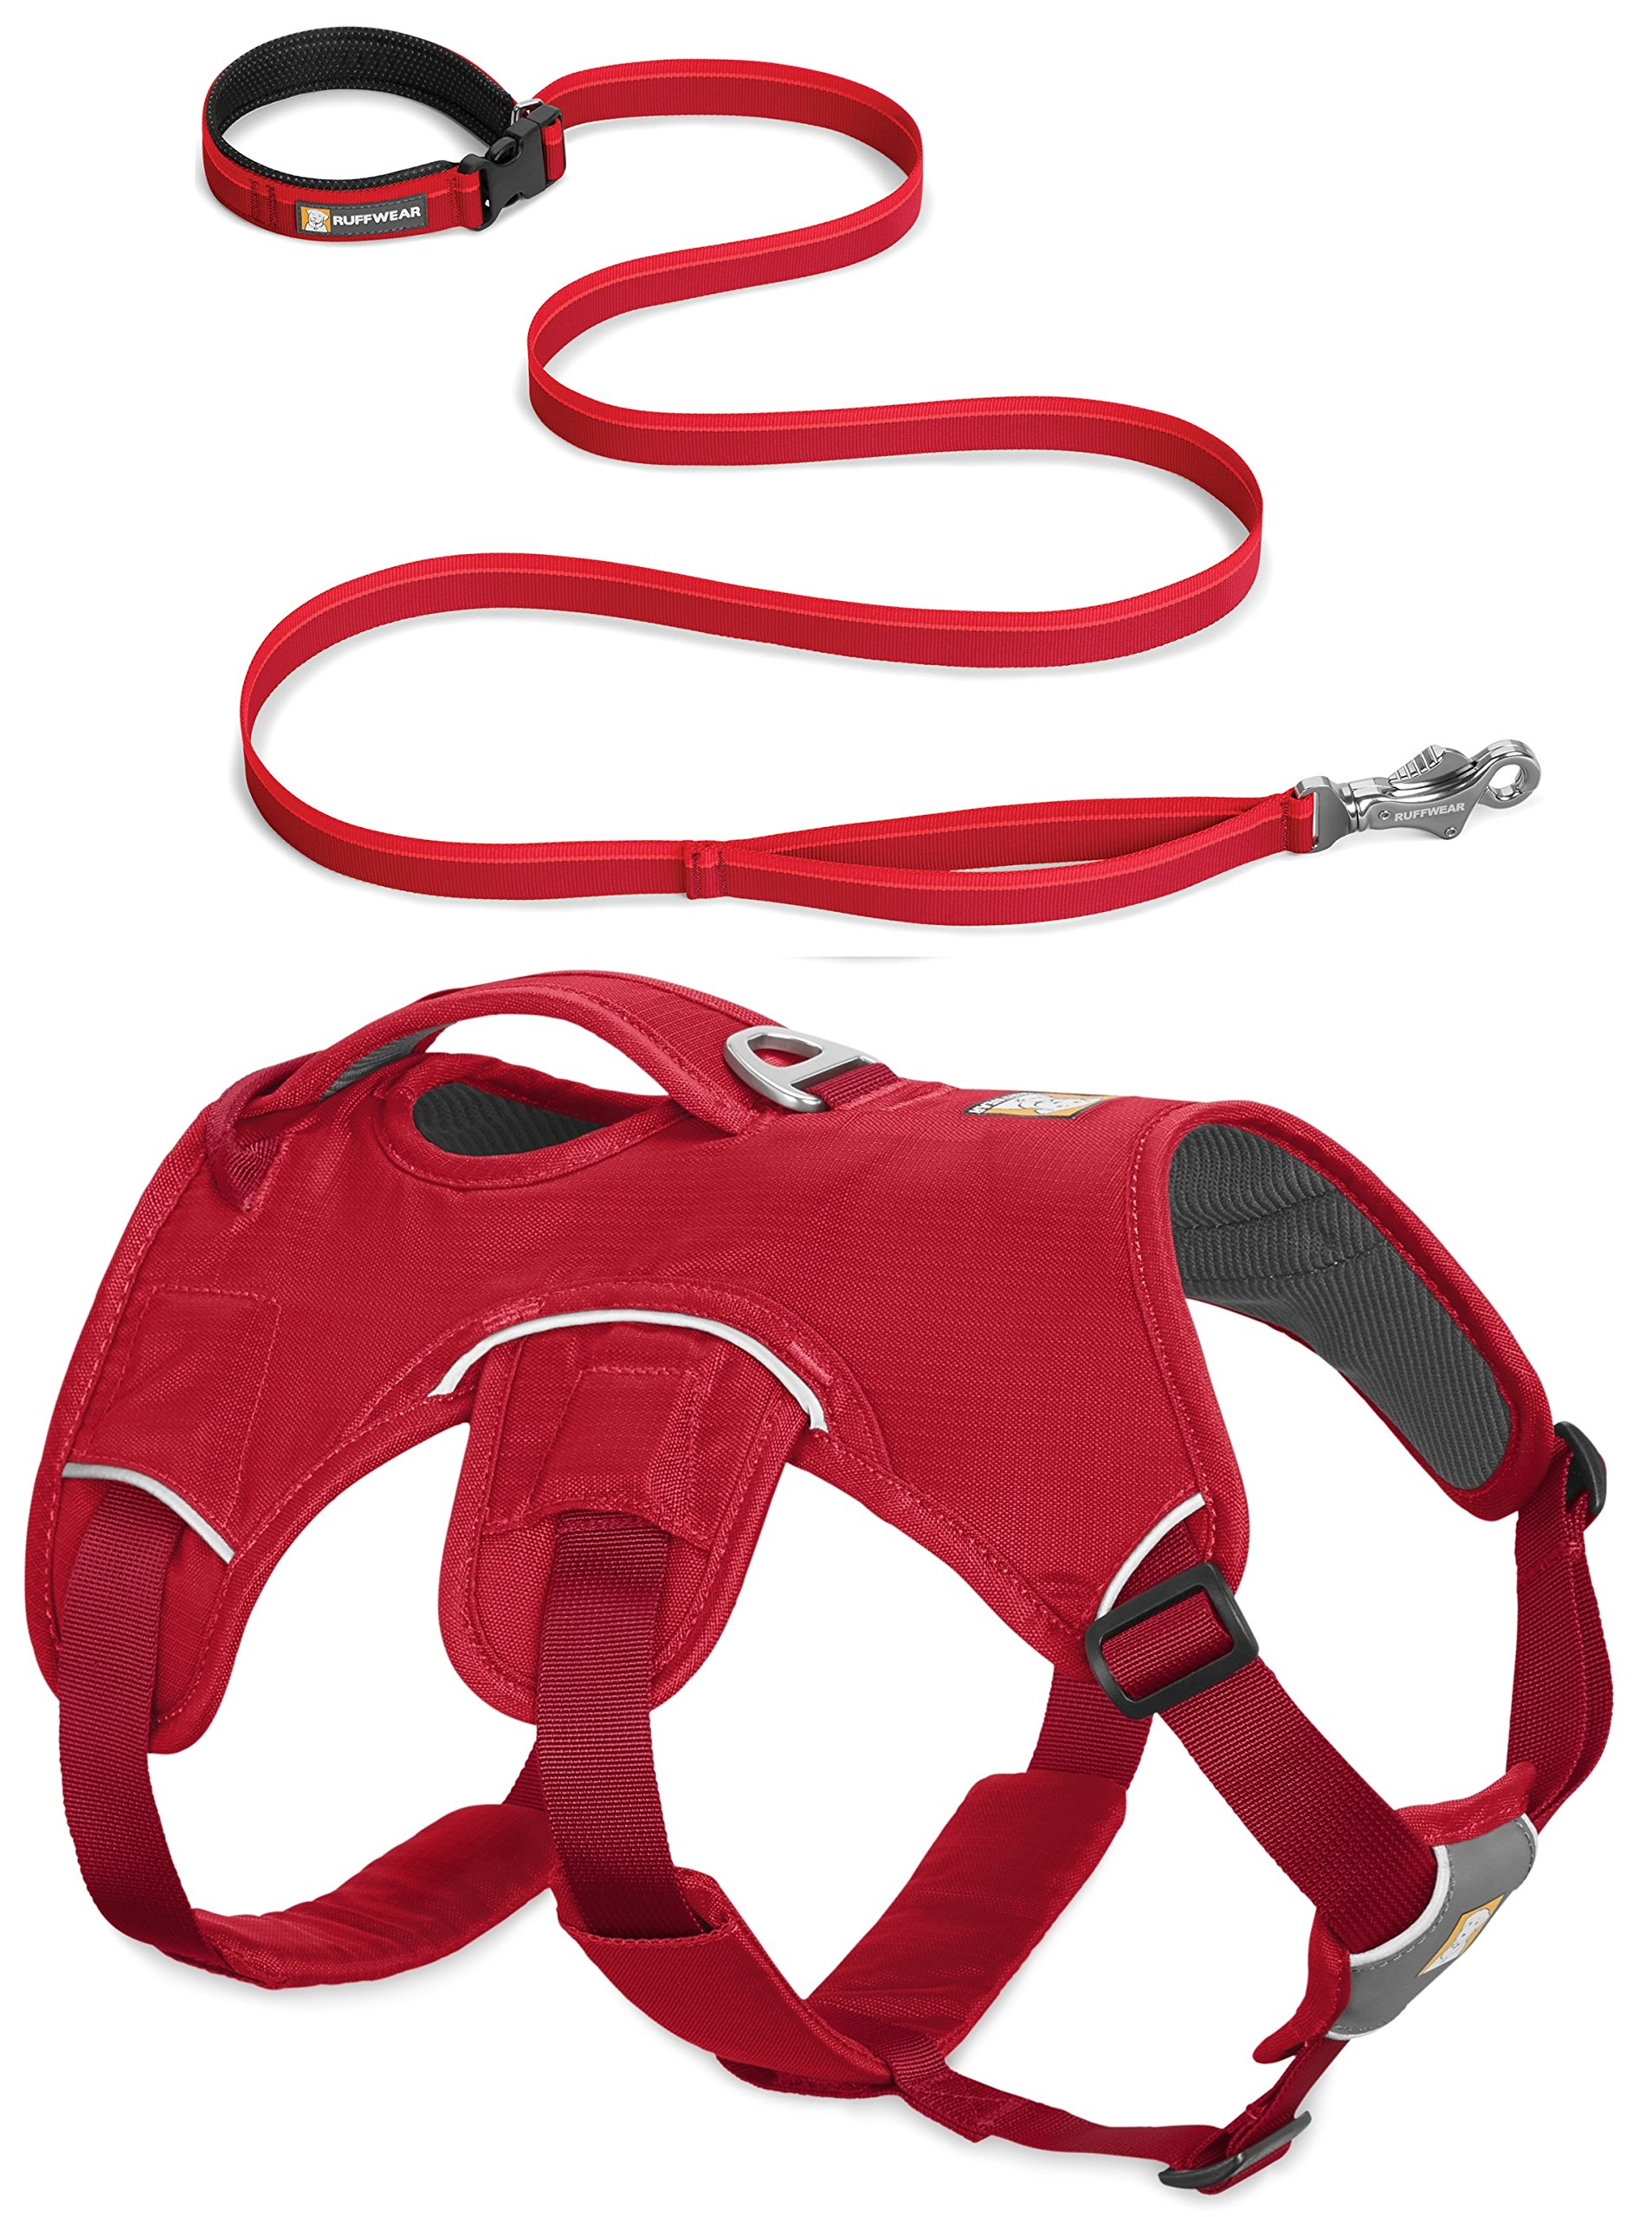 RUFFWEAR RED Web Master Dog Harness and Flat Out Leash Combo ♦ Secure Reflective Supportive Multi USE (Small)